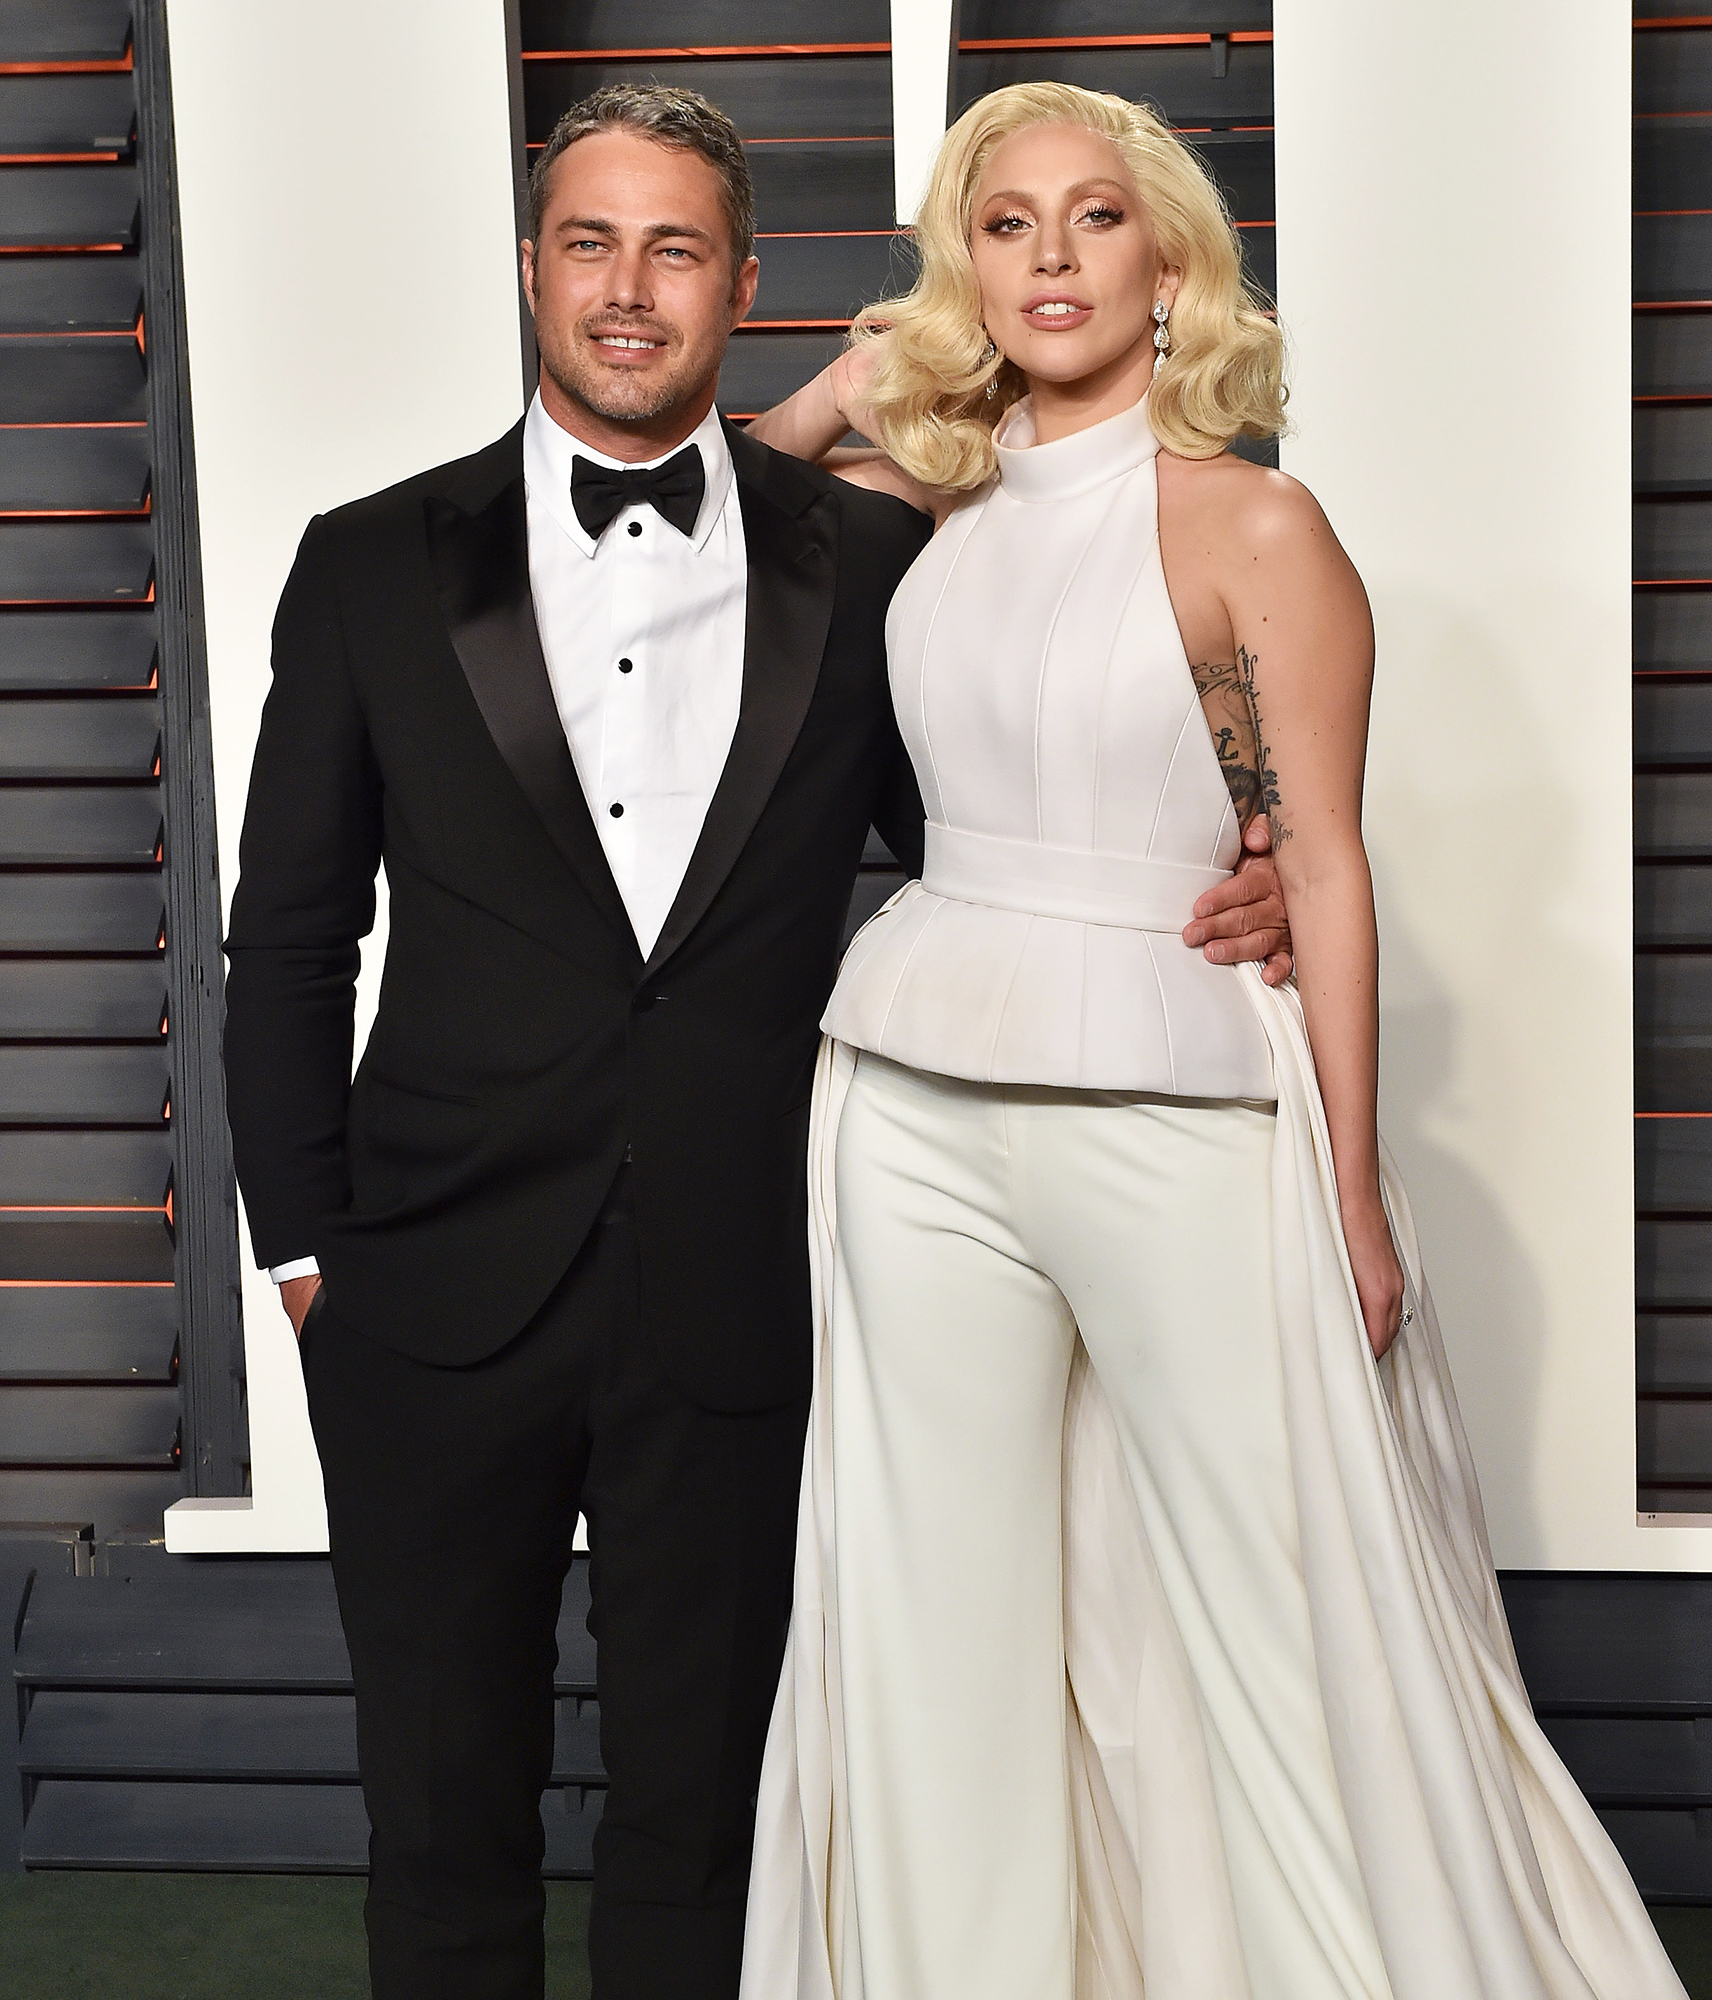 Taylor Kinney Apologizes to Ex Lady Gaga After Liking Shady Comment About Her - Taylor Kinney and Lady Gaga arrive at the 2016 Vanity Fair Oscar Party Hosted By Graydon Carter at Wallis Annenberg Center for the Performing Arts on February 28, 2016 in Beverly Hills, California.